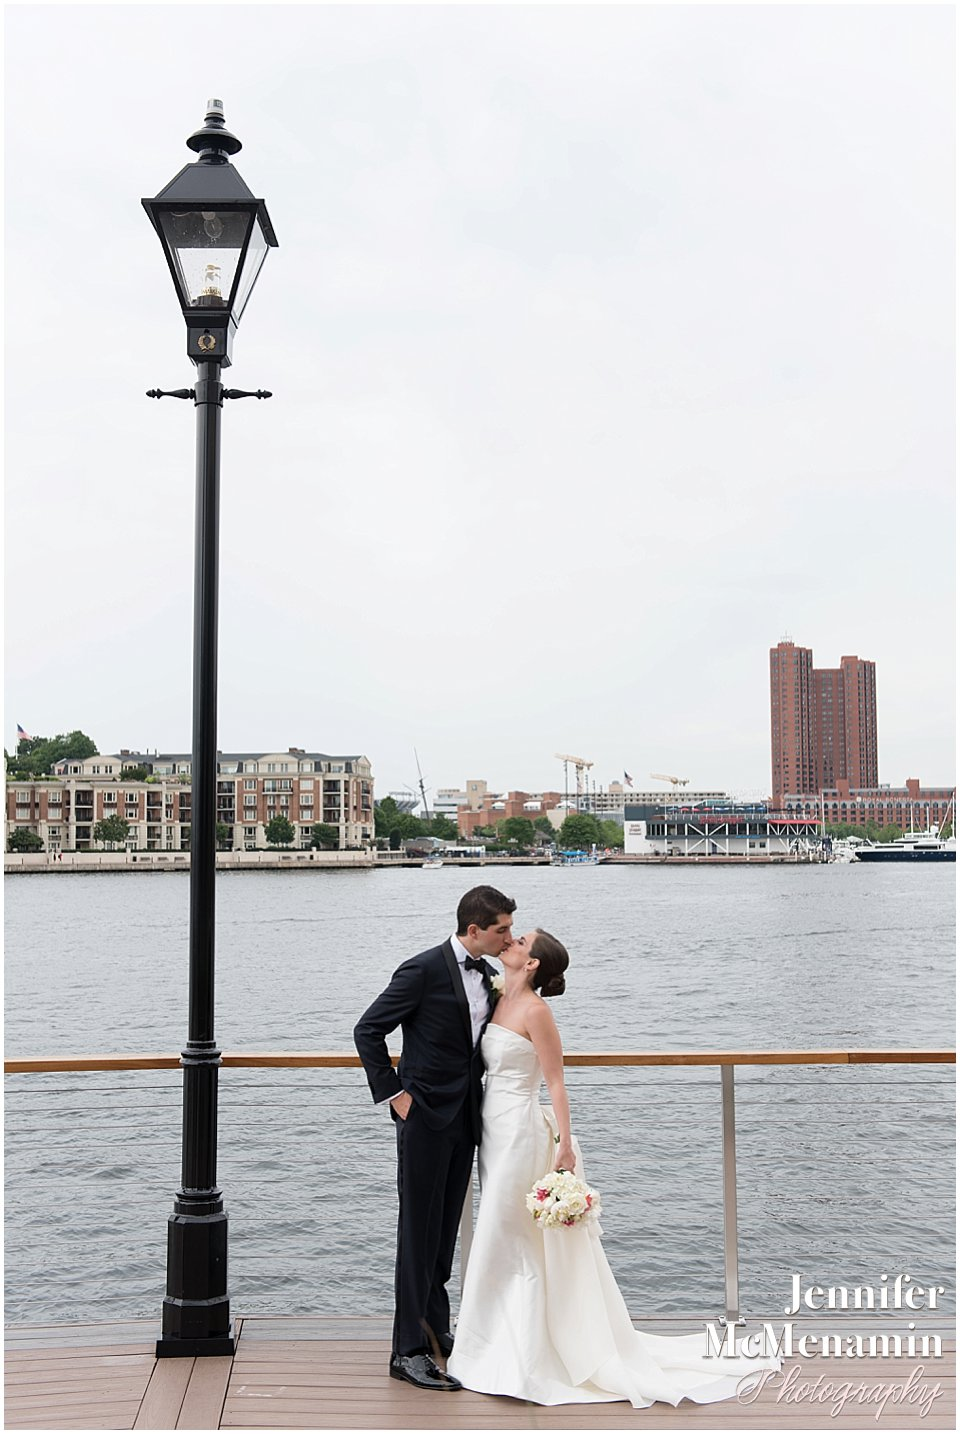 009-Jennifer-McMenamin-Photography-Baltimore-Waterfront-Marriott-wedding_0021